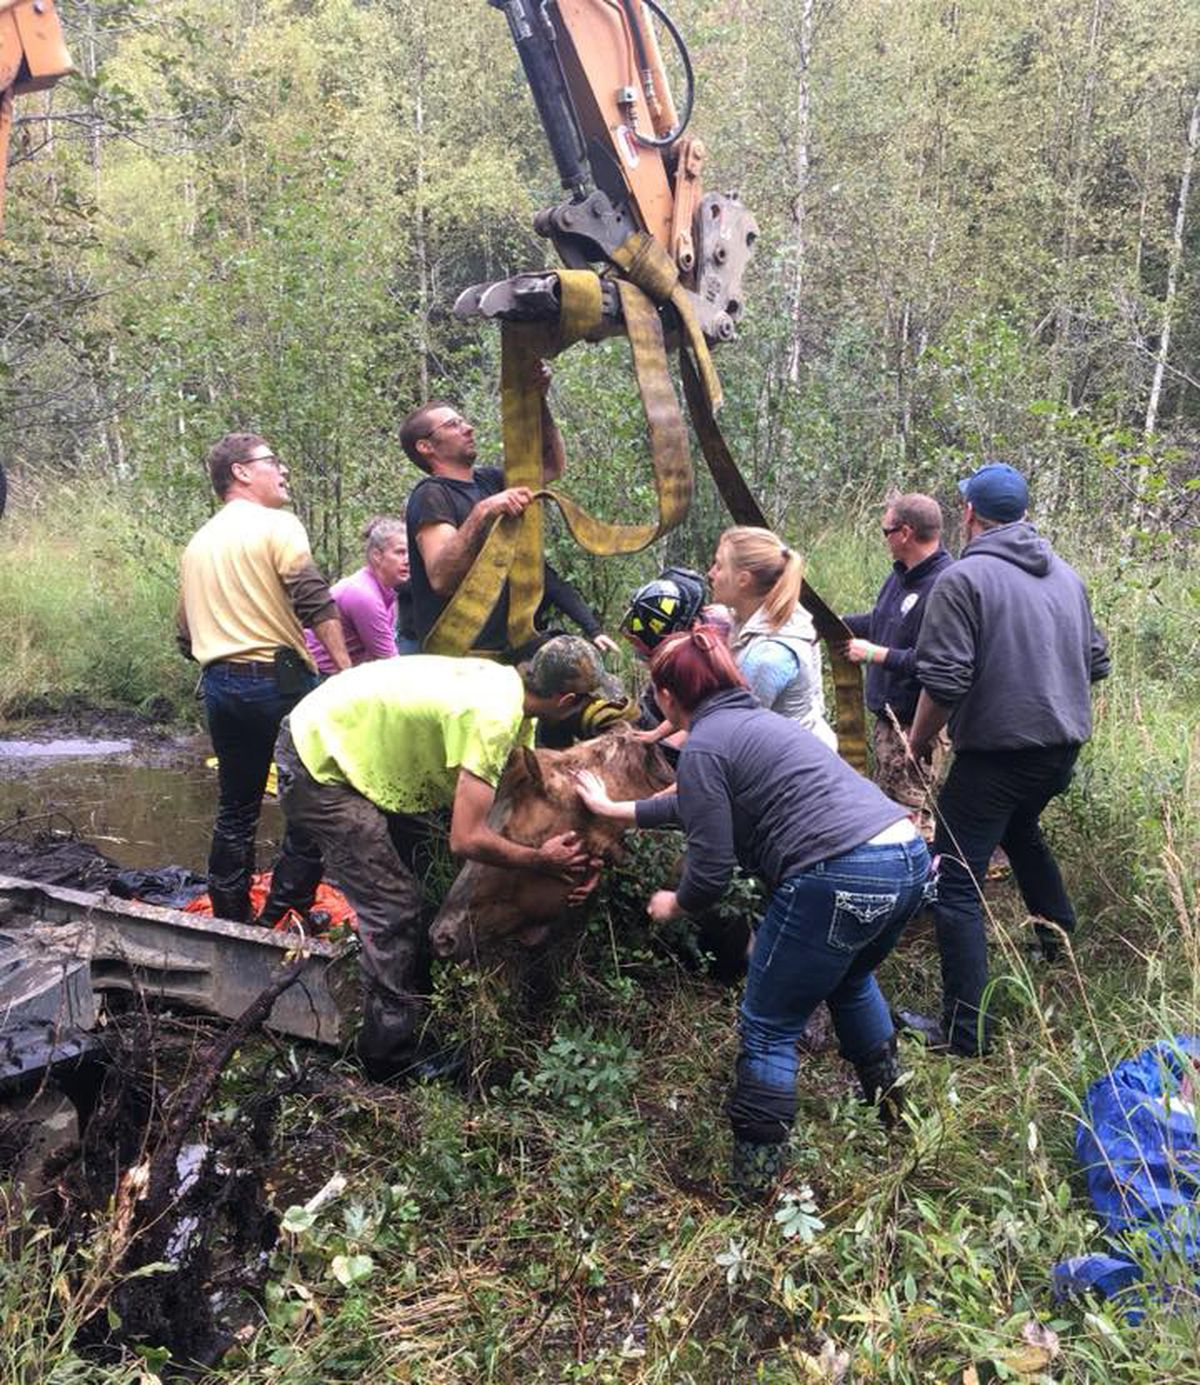 Volunteers work to free Luna, a 13-year-old quarter horse, from a swamp in Chugiak on Friday, Aug. 31, 2018. (Photo by Chugiak Volunteer Fire and Rescue Department)